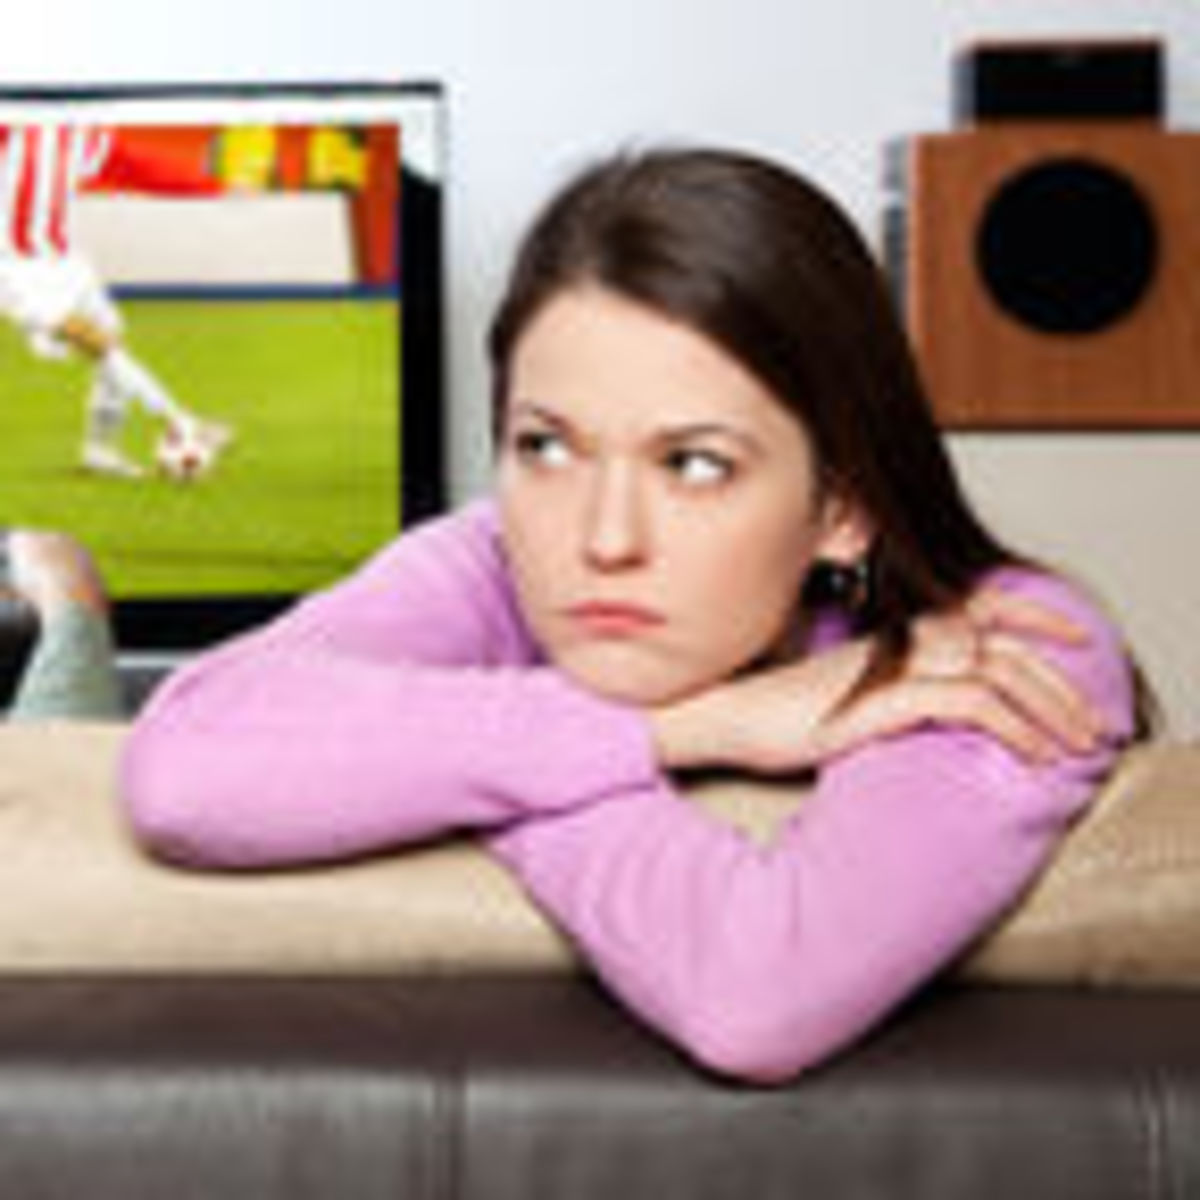 9 Things Passive-Aggressive People Do | Psychology Today